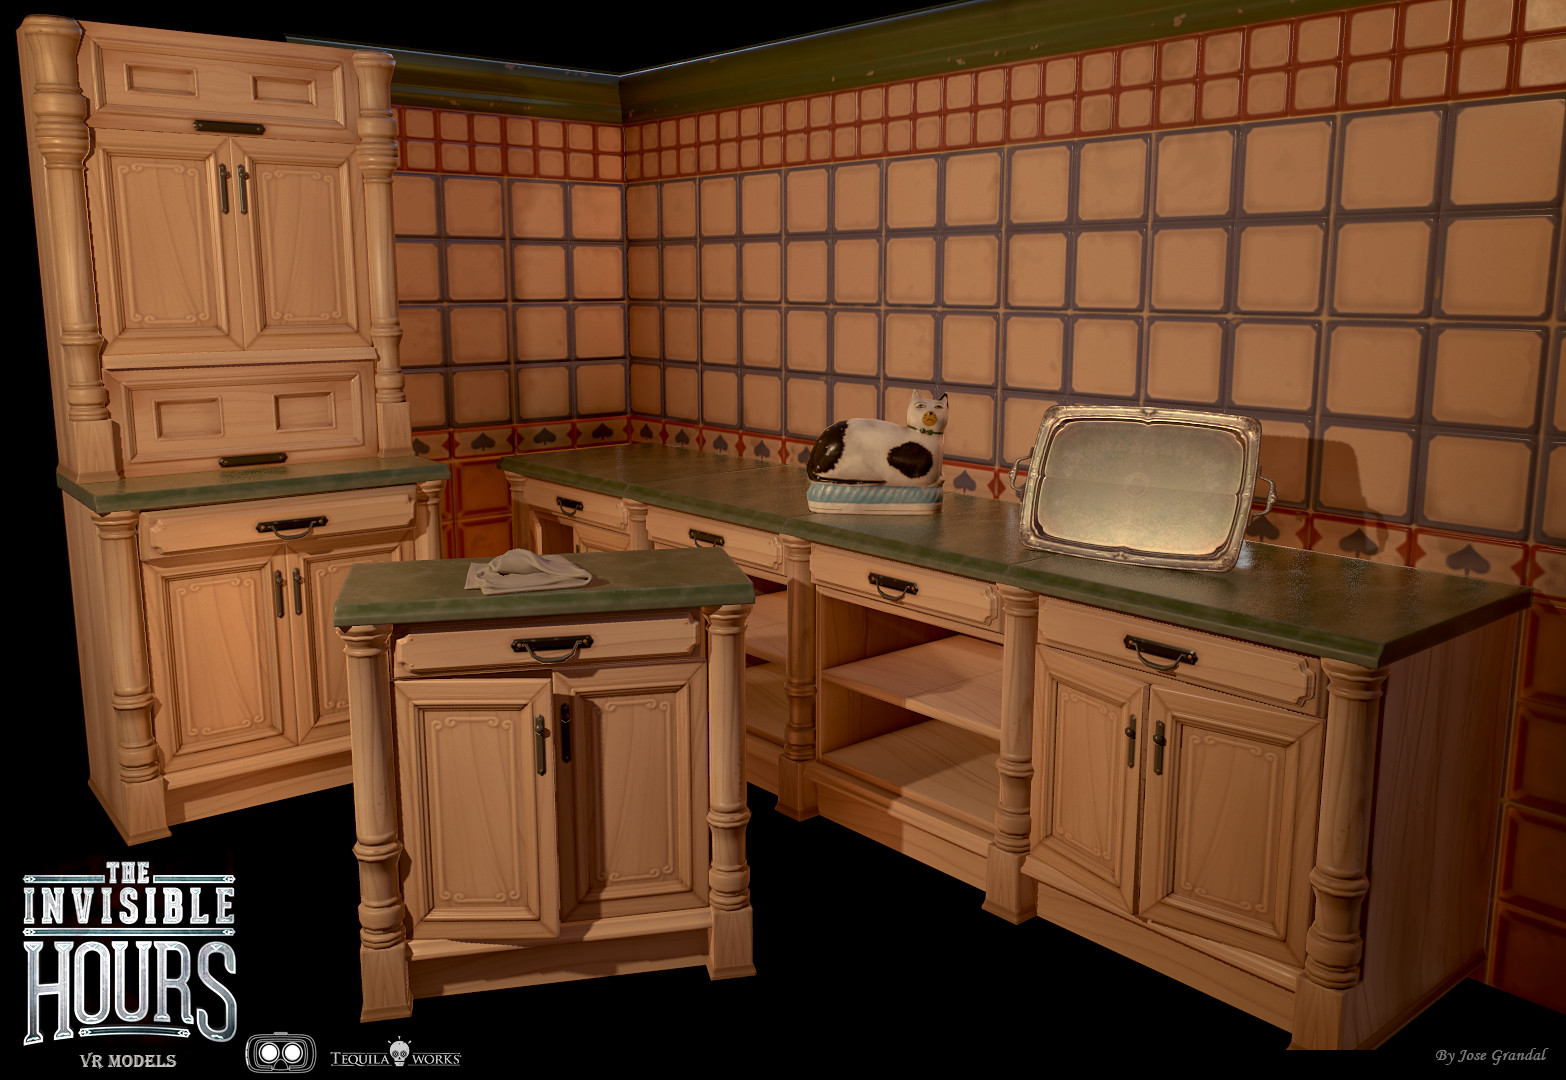 Jose grandal kitchencabinets 1